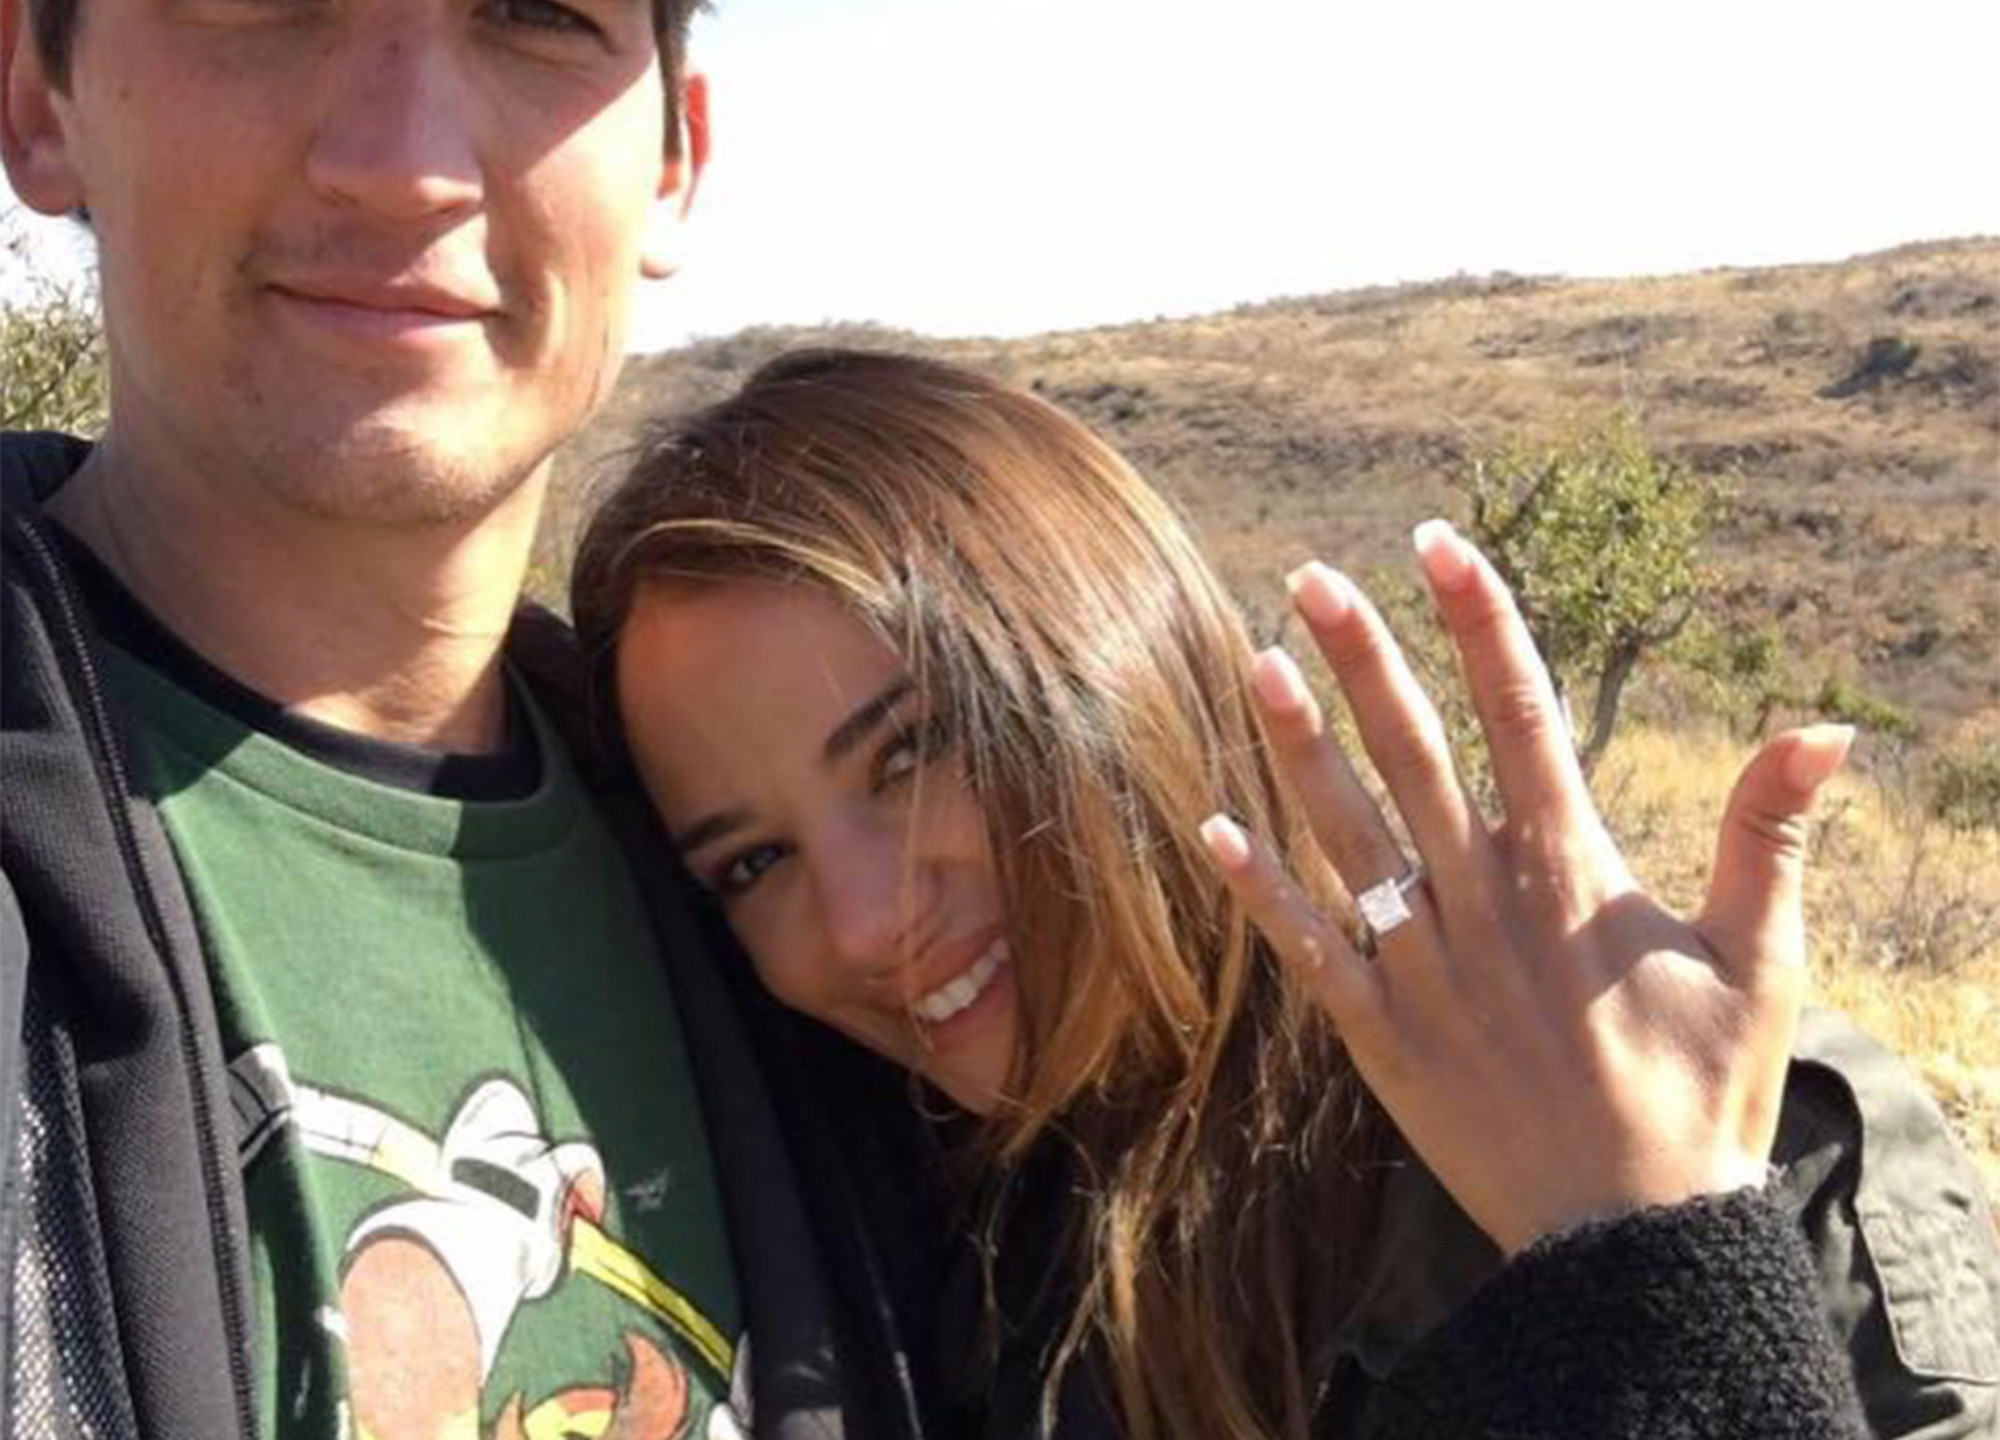 Miles Teller and Keleigh Sperry get engaged!